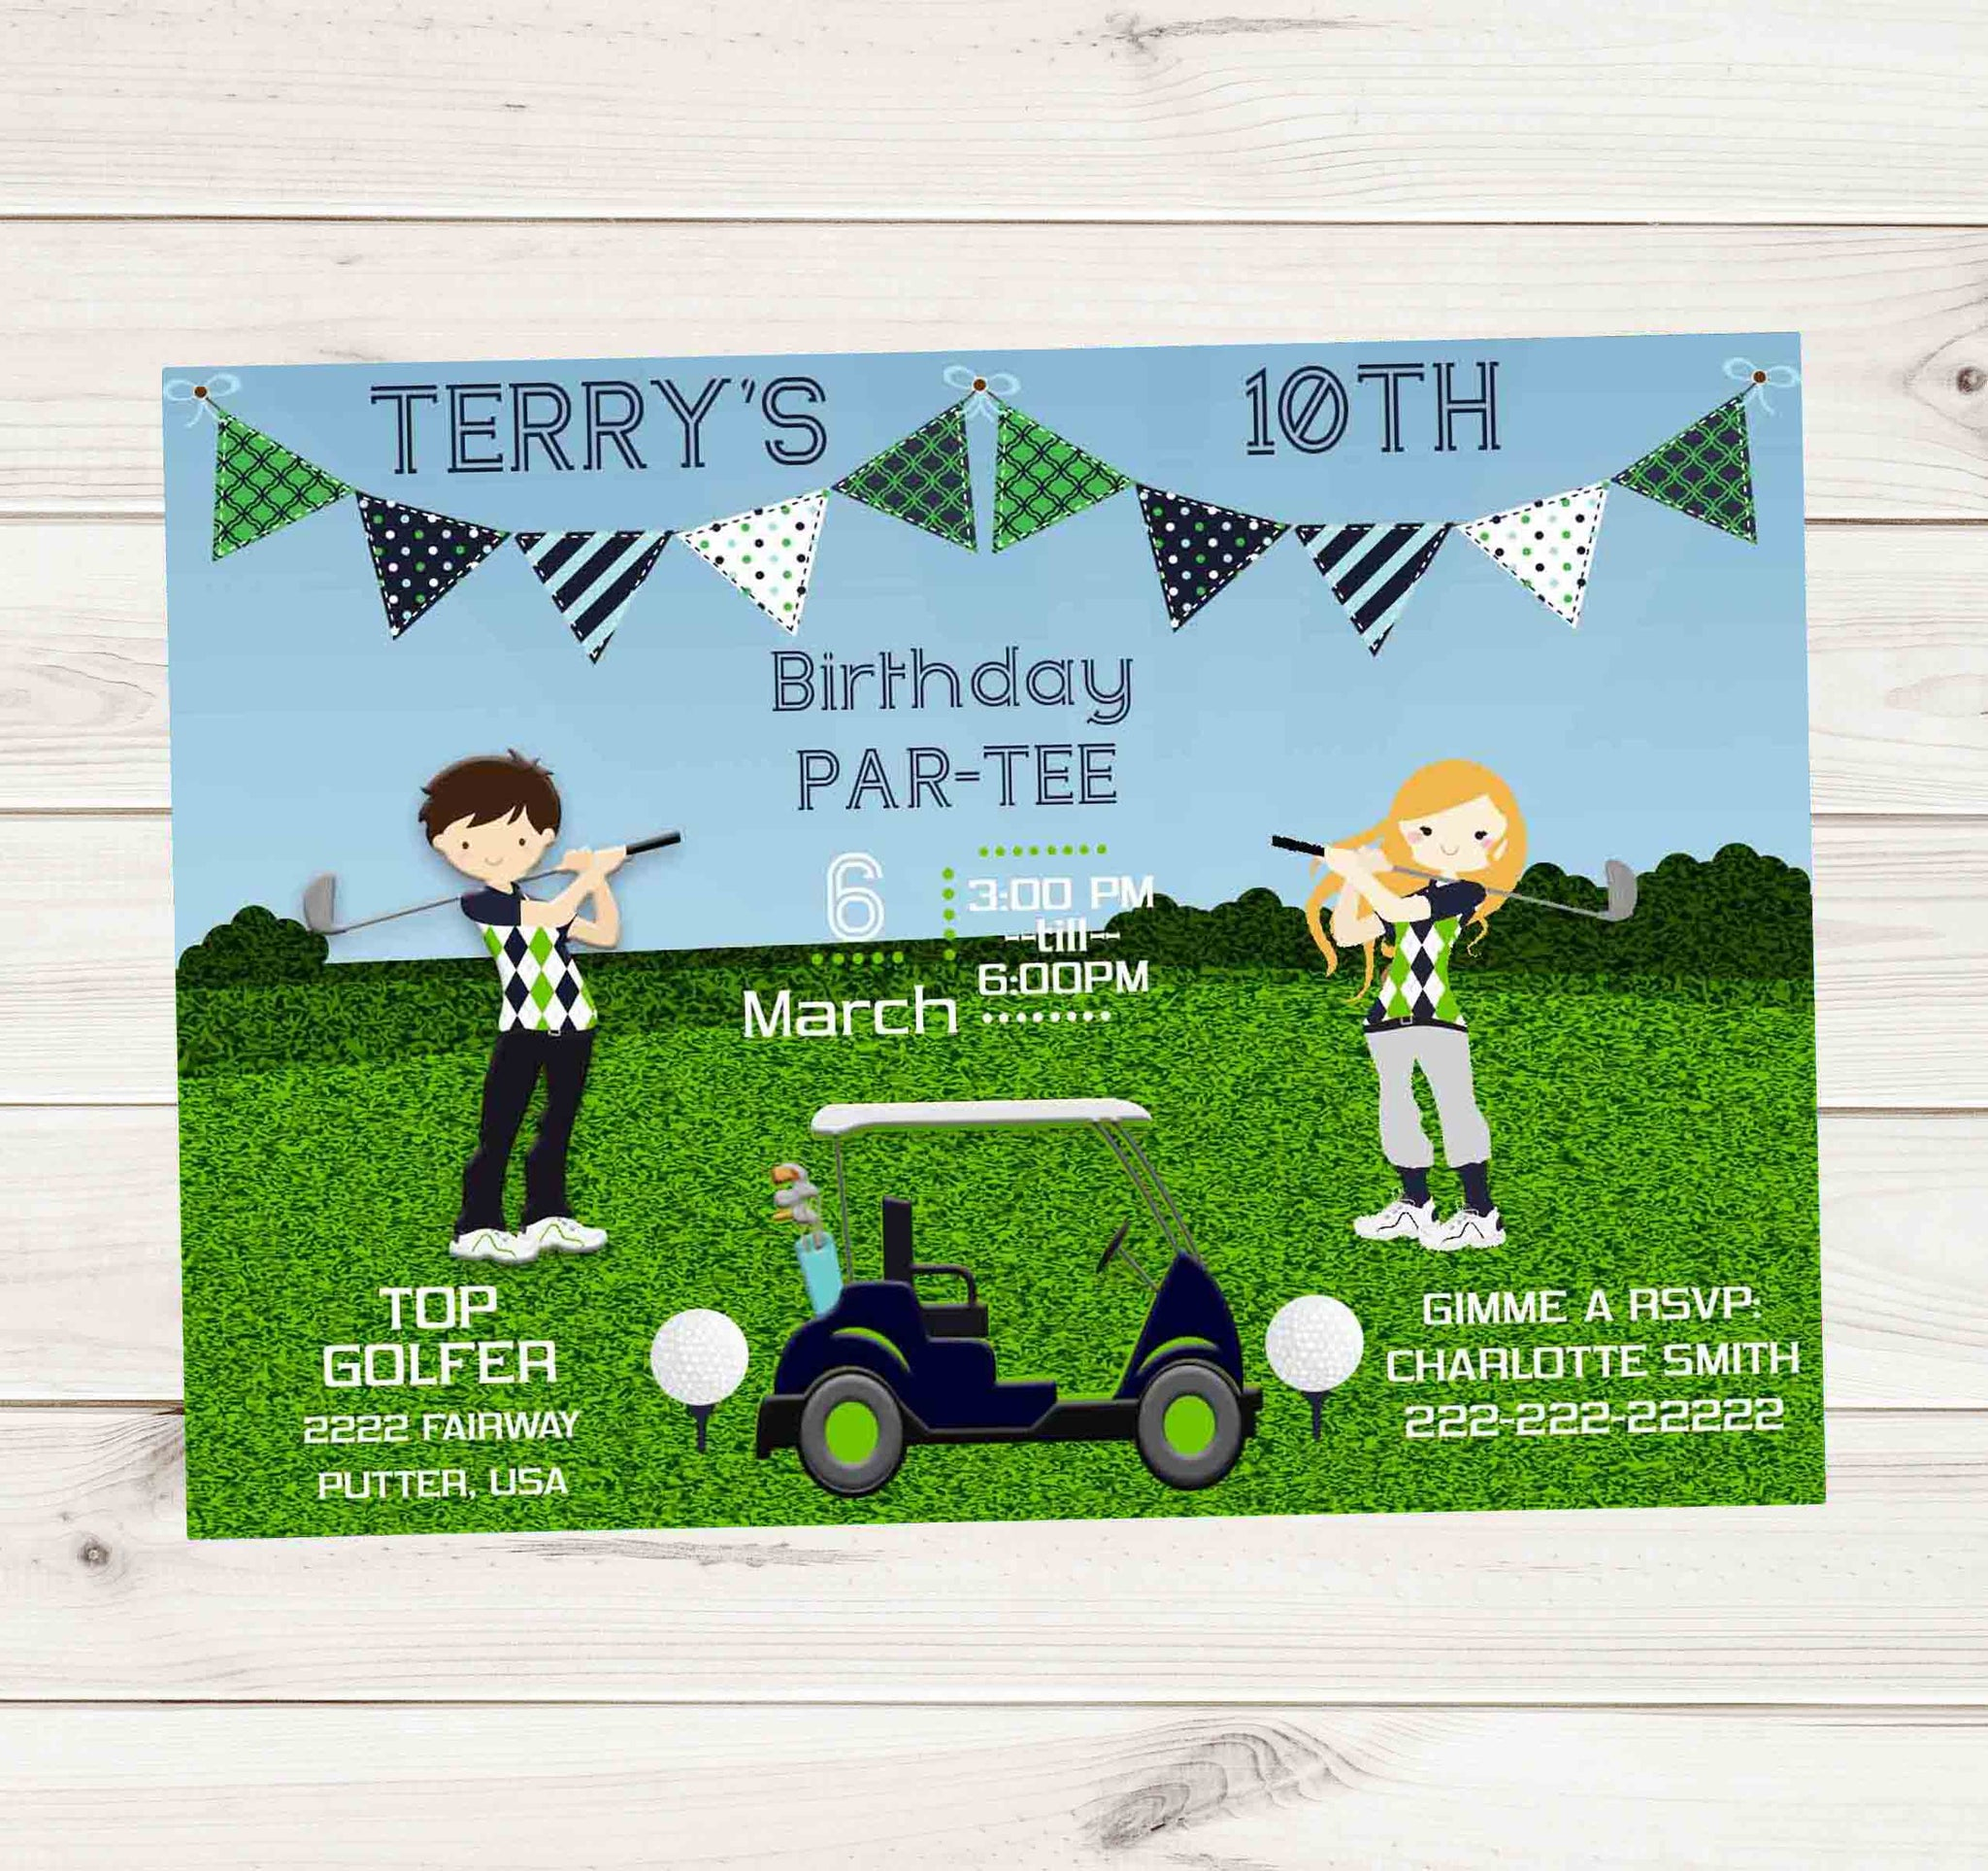 Golfing Birthday Party with Cart Golf Balls and Tees - Custom Printable - Invites and Delites